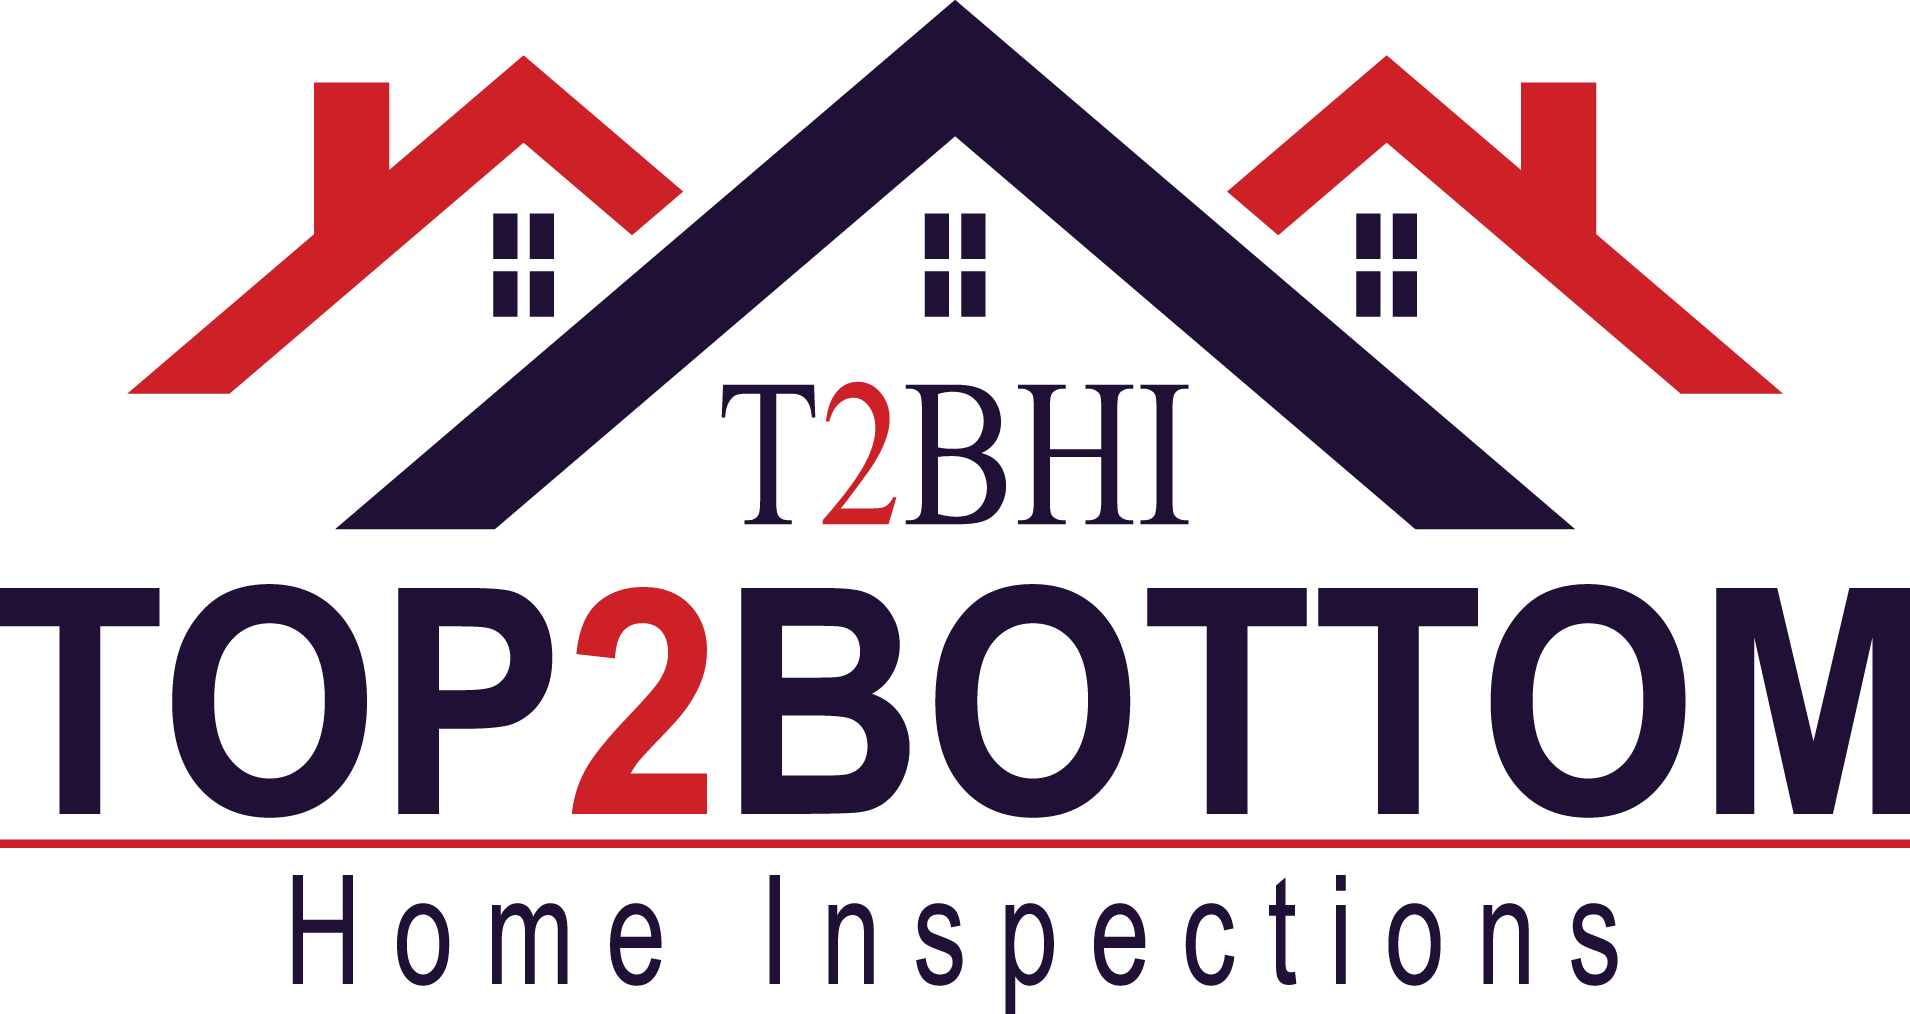 Think, that Top 2 bottom inspections consider, that